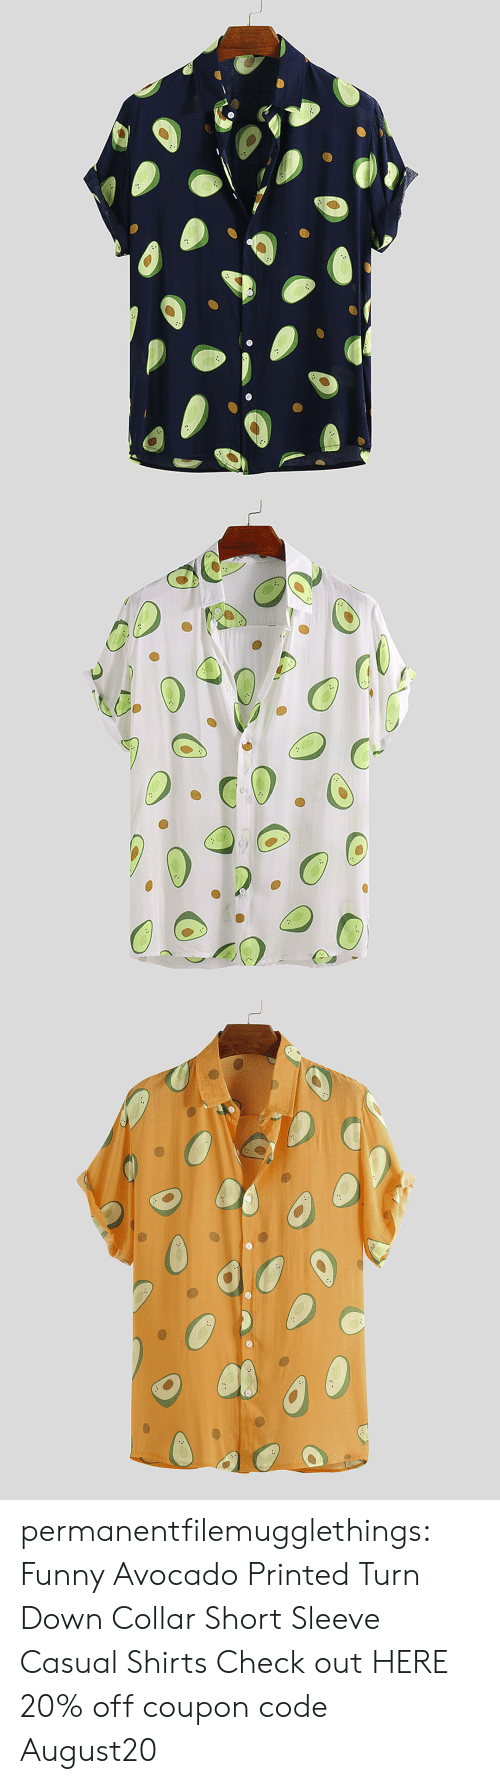 turn down: permanentfilemugglethings: Funny Avocado Printed Turn Down Collar Short Sleeve Casual Shirts Check out HERE 20% off coupon code:August20